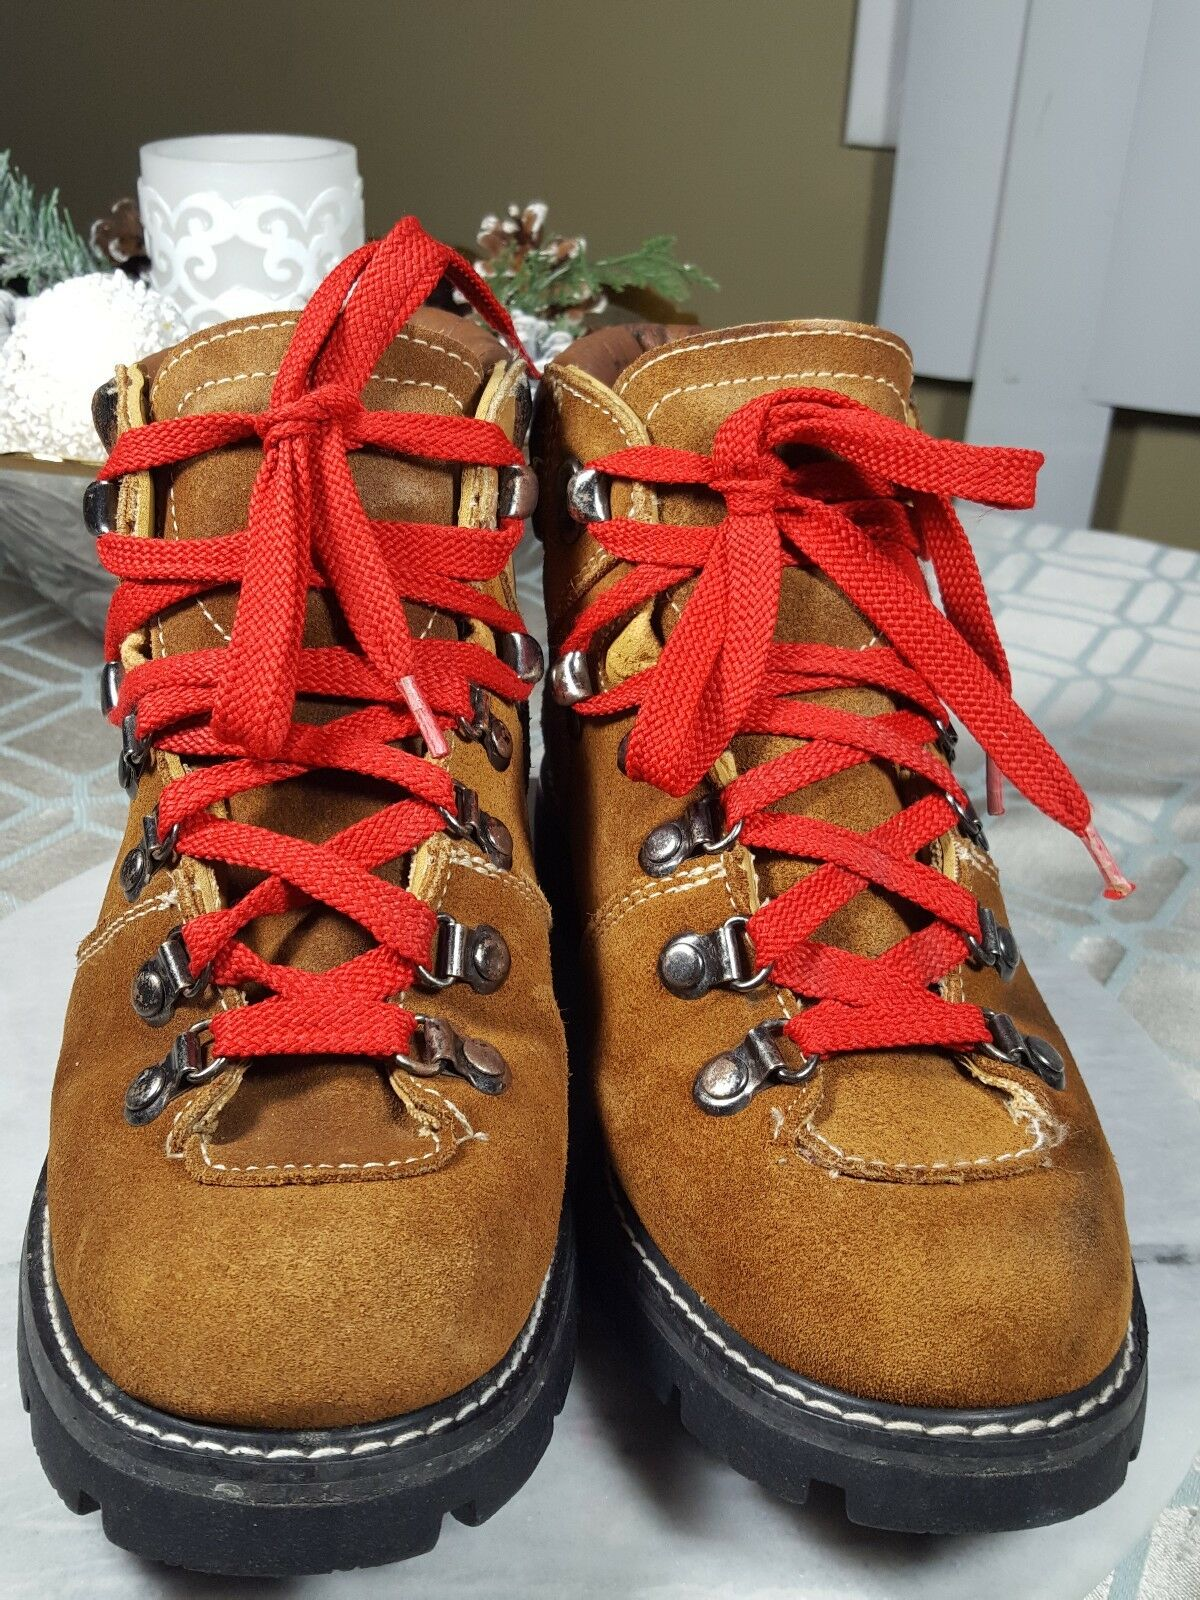 VINTAGE OZARK TRAIL LACE UP HIKING ANKLE LEATHER BOOTS MEN'S SIZE 6  WOMAN'S 8 M